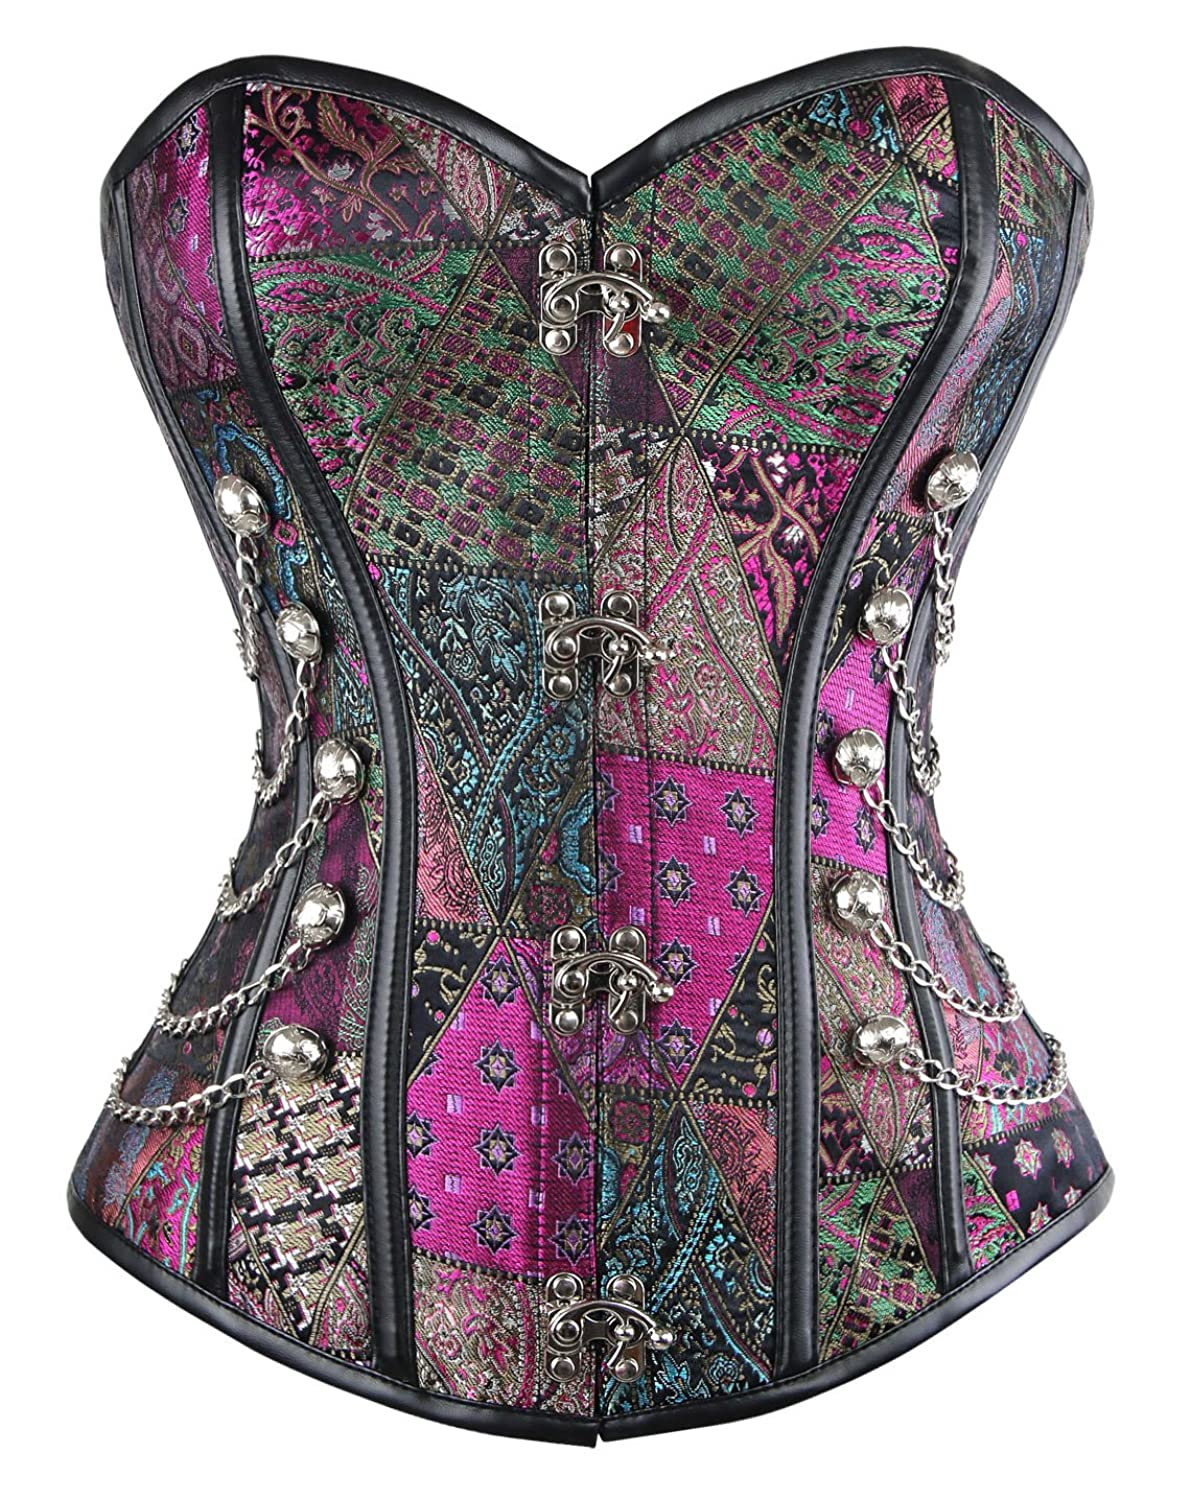 f1c2cf71aa9e6 Women s Spiral Steel Boned Steampunk Gothic Bustier Corset with Chains